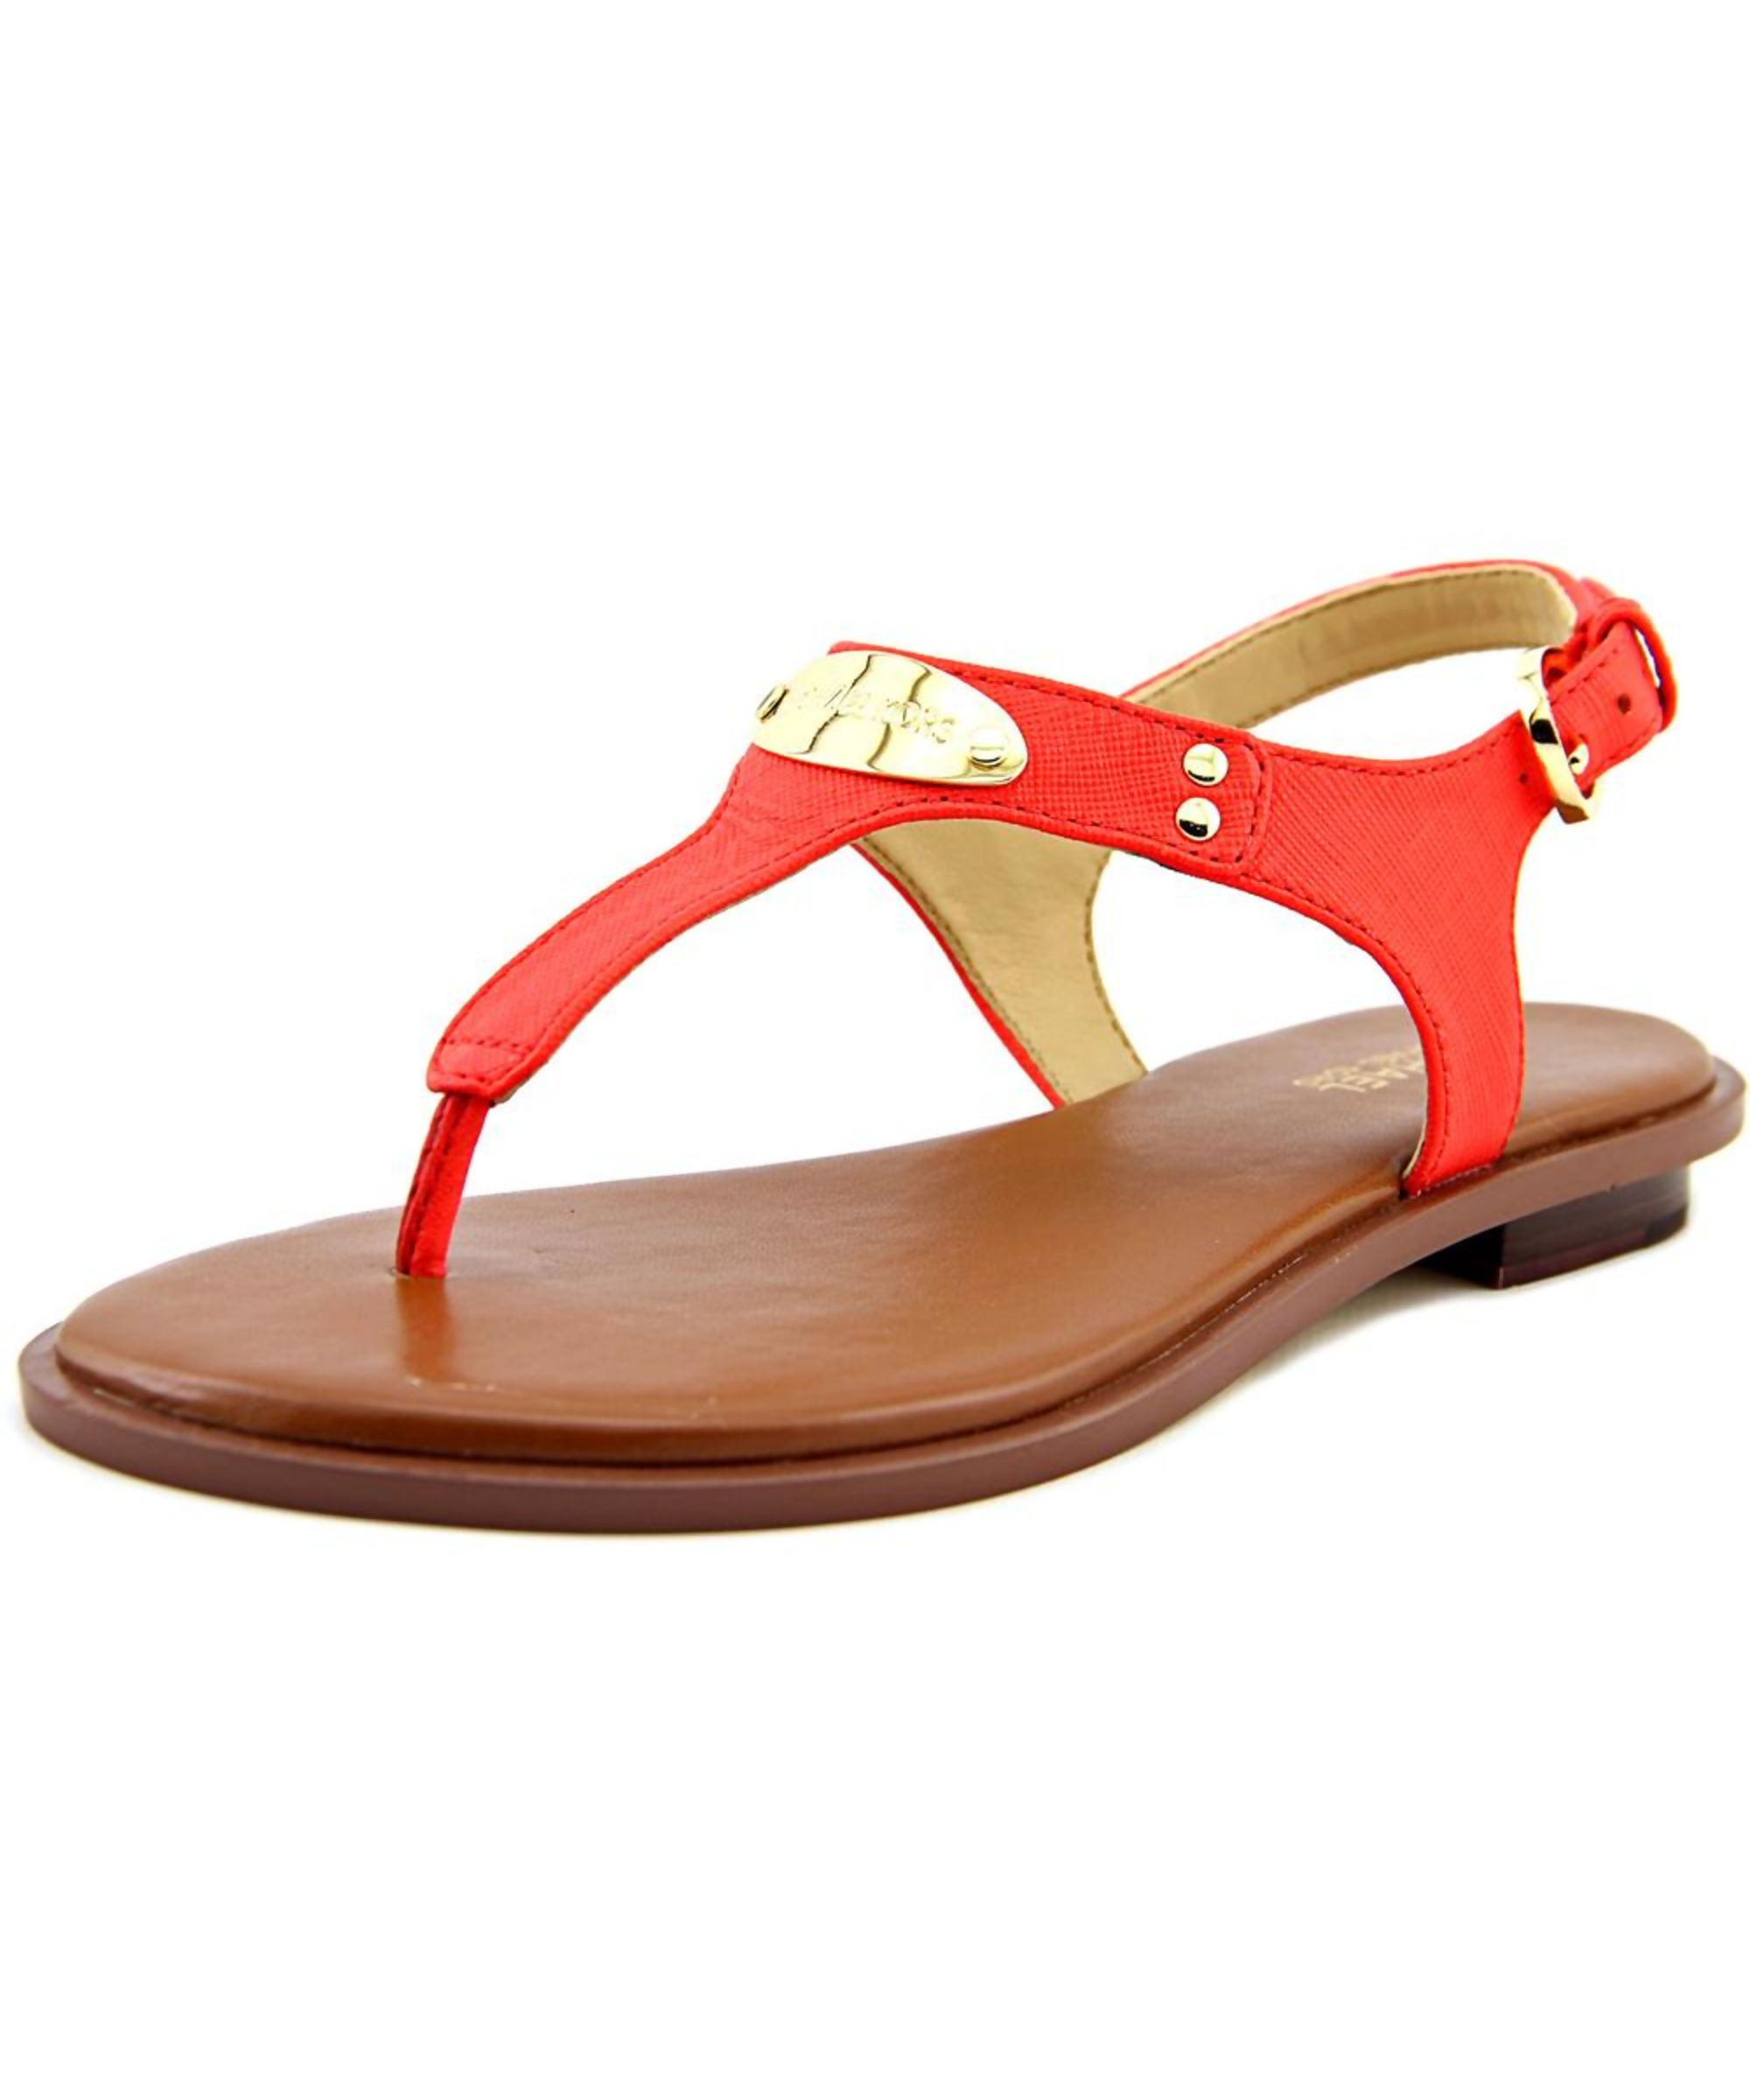 483f0ac72 MICHAEL KORS | Michael Kors Mk Plate Thong Women Open Toe Leather Thong  Sandal #Shoes #Sandals #MICHAEL KORS